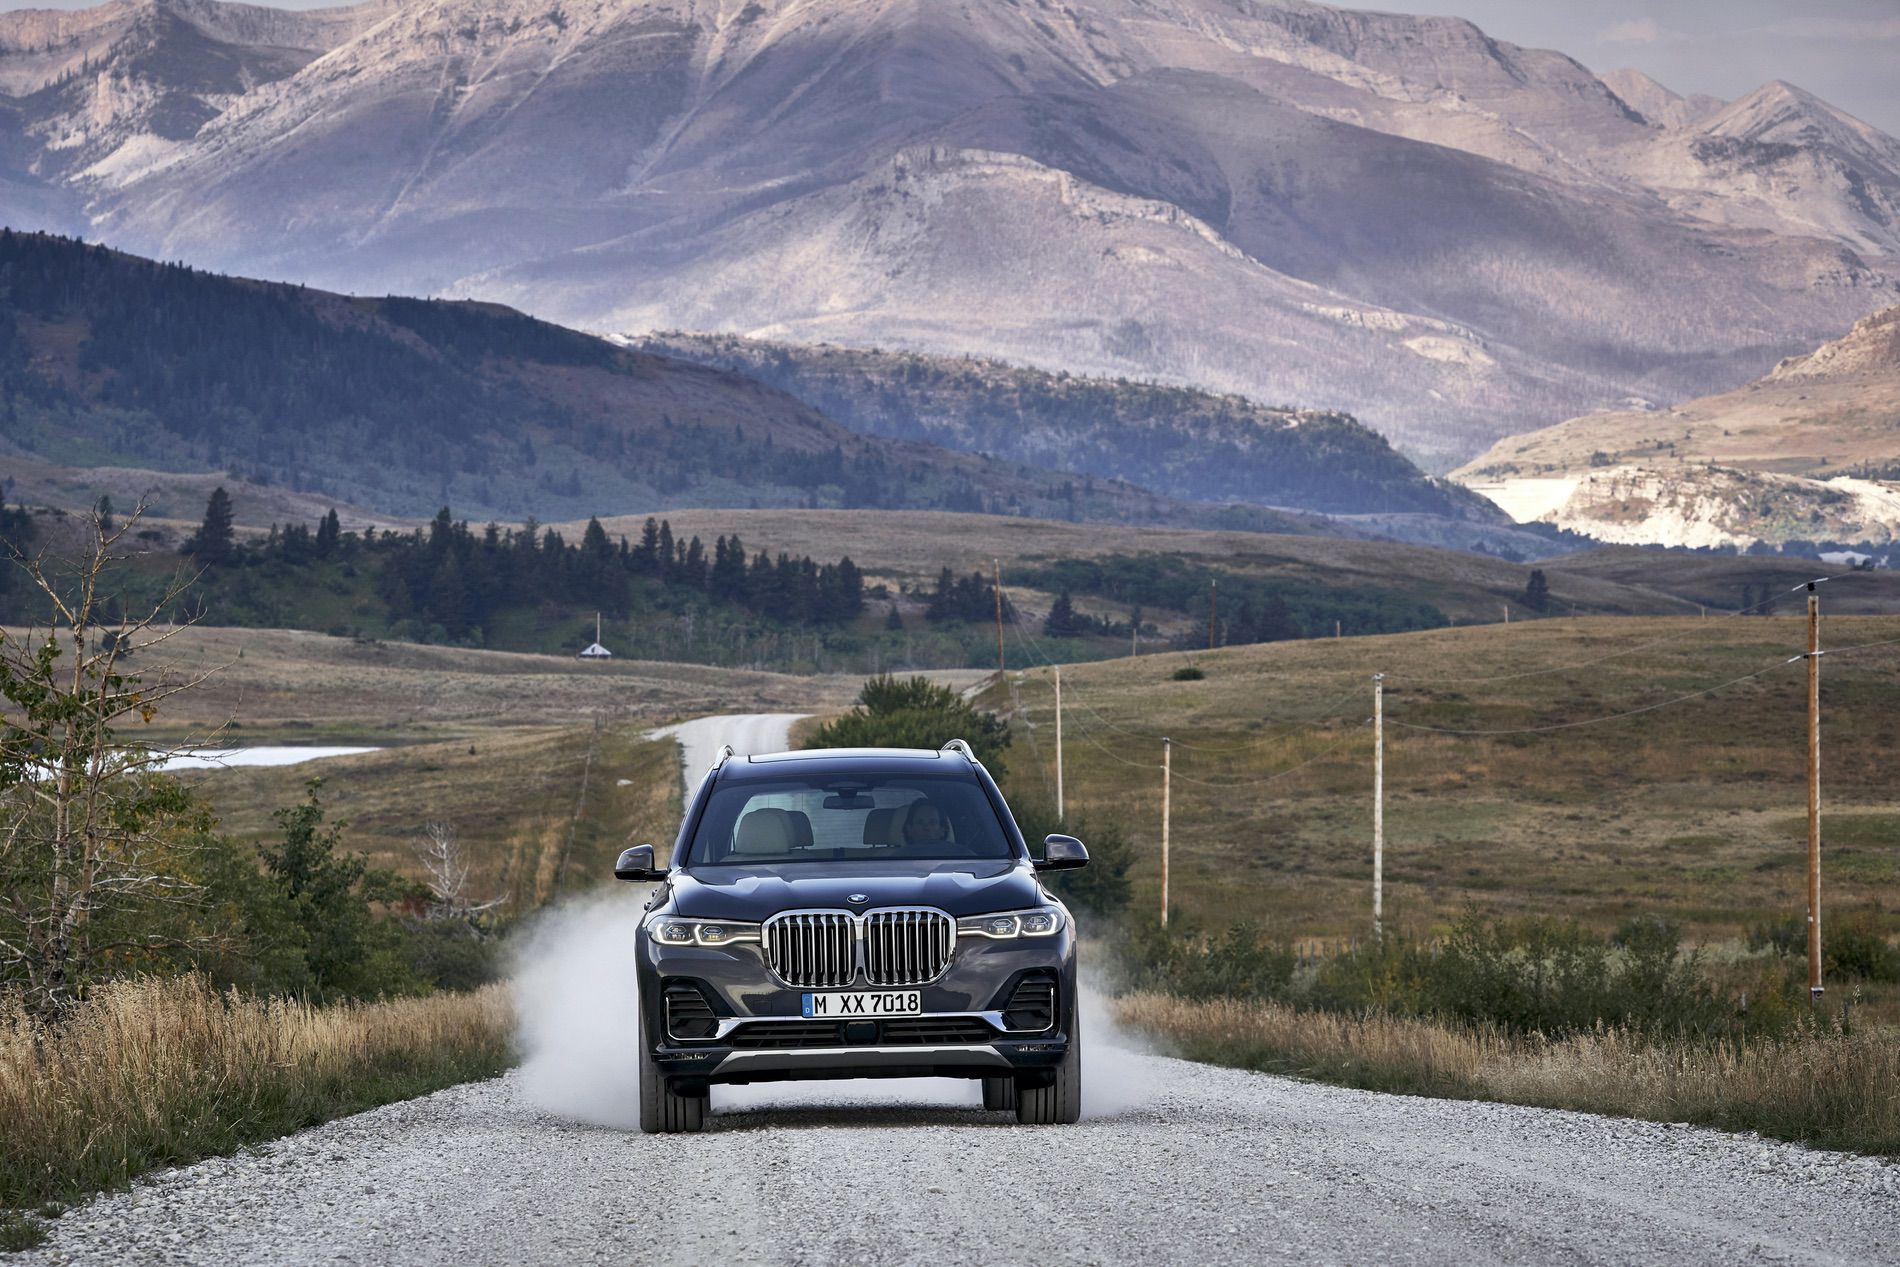 Bmw X7 Vs Bmw X5 Photo Comparison